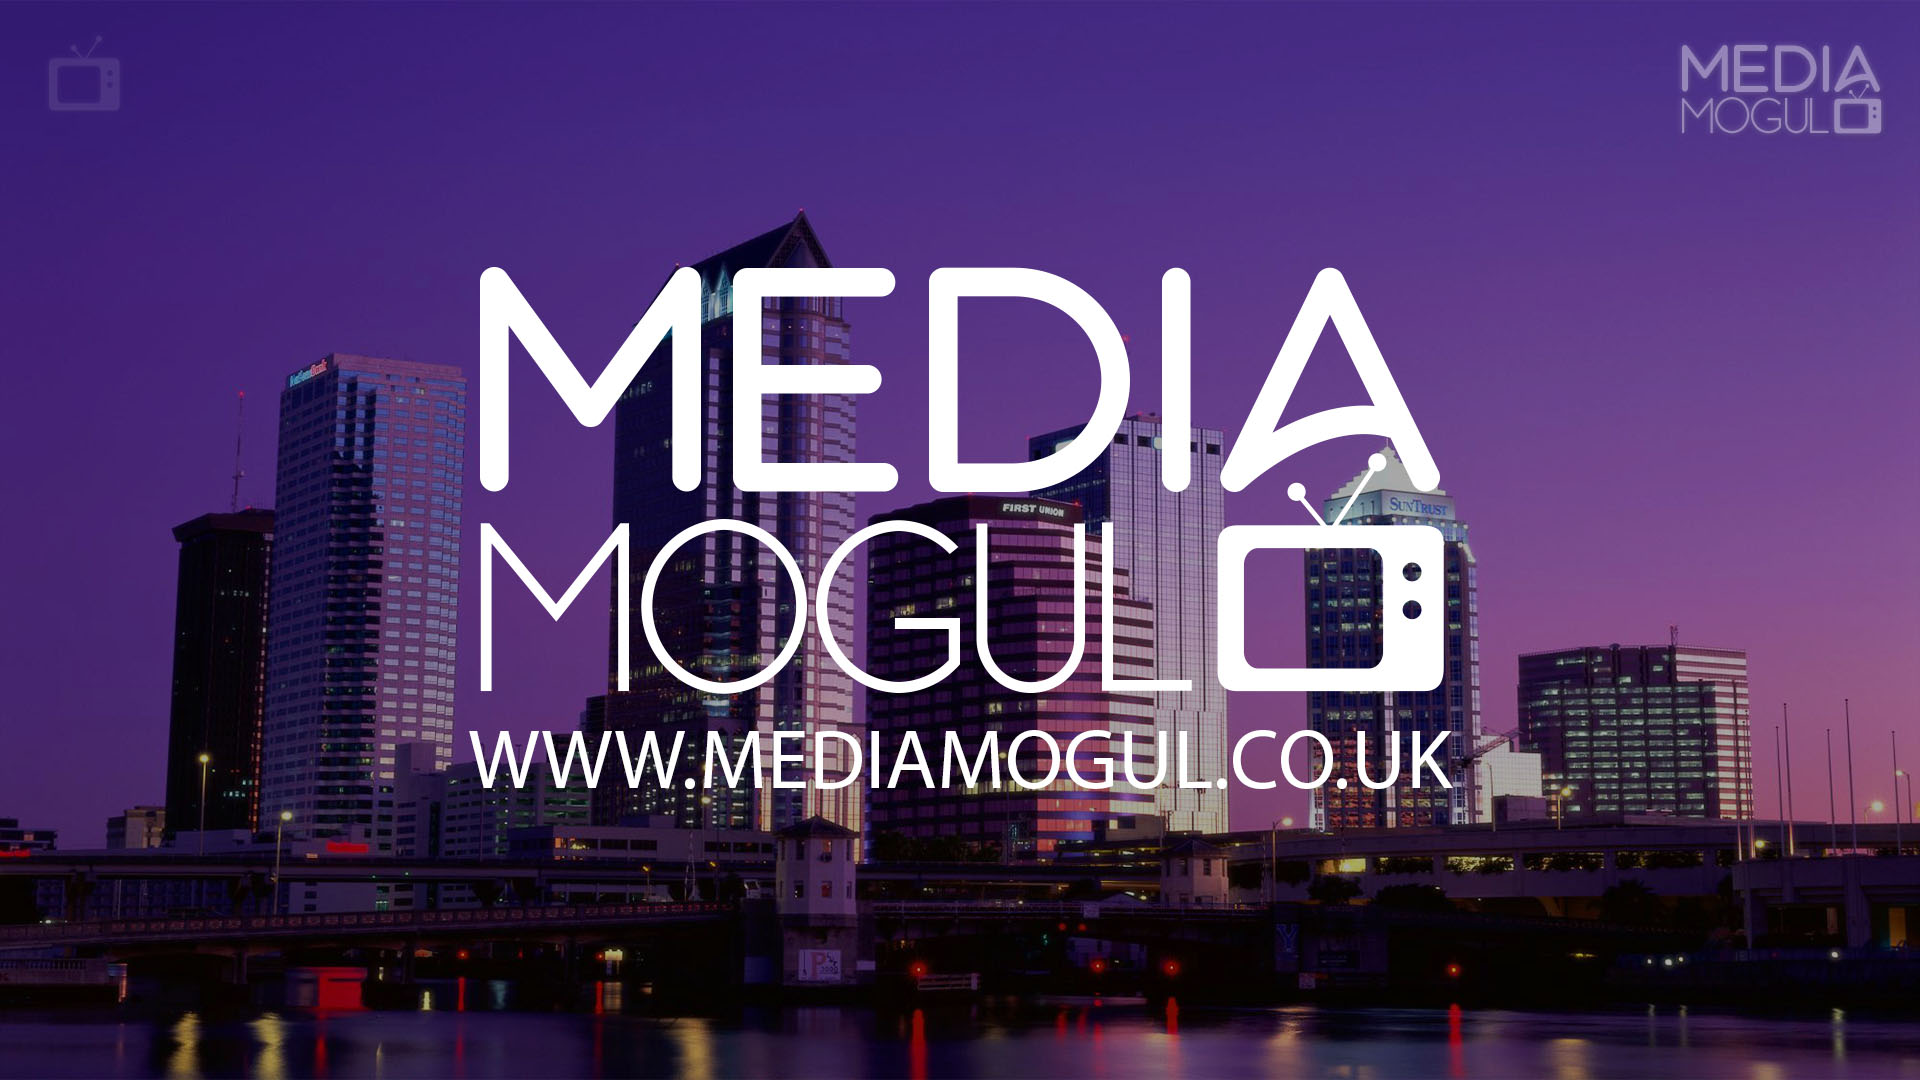 Media Mogul Backdrop 16